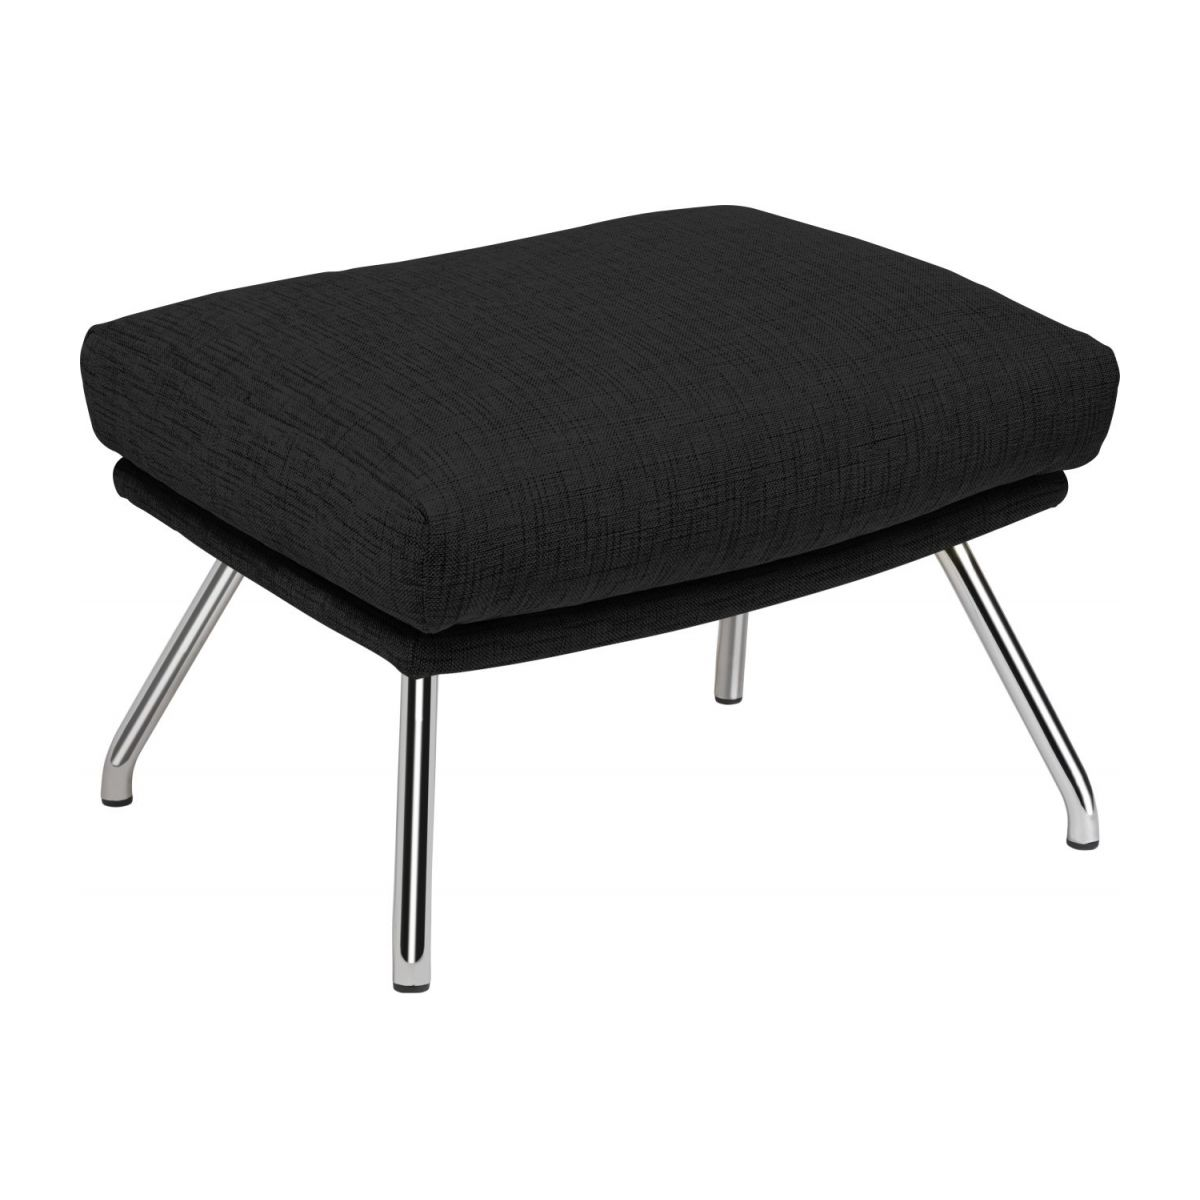 Footstool in Ancio fabric, nero with chromed metal legs n°1